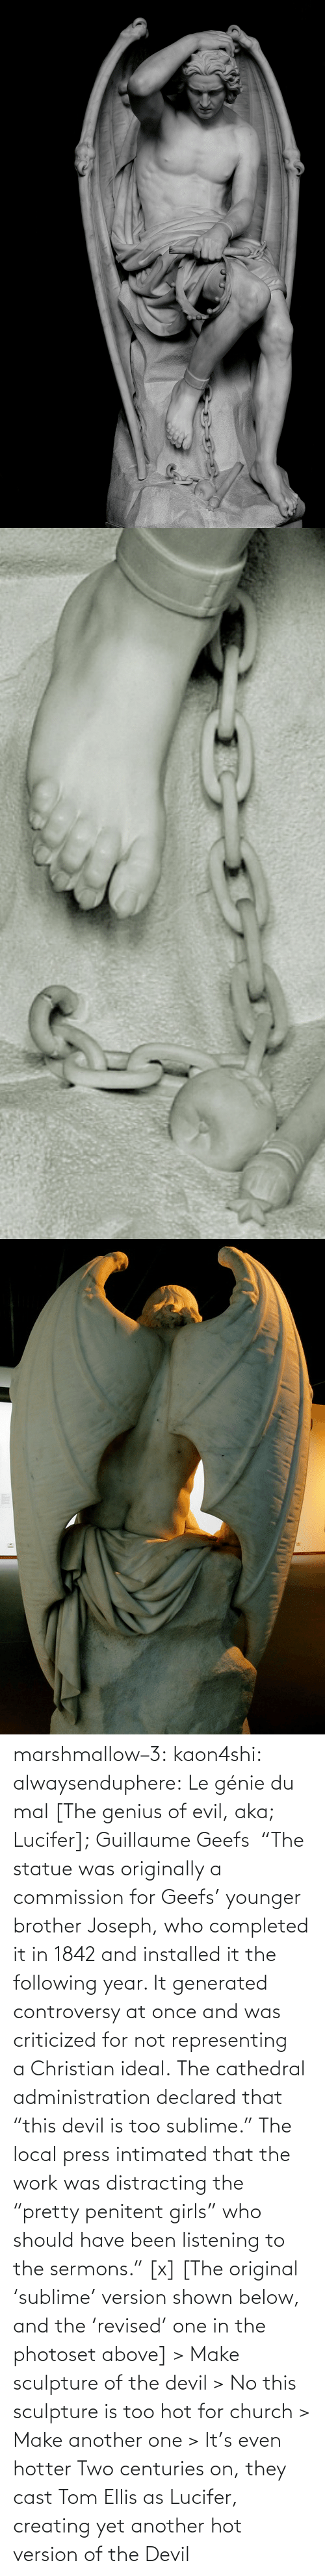 """Another One, Church, and Girls: marshmallow–3: kaon4shi:  alwaysenduphere:  Le génie du mal [The genius of evil, aka; Lucifer];Guillaume Geefs """"The statue was originally a commission for Geefs' younger brother Joseph, who completed it in 1842 and installed it the following year. It generated controversy at once and was criticized for not representing aChristianideal.The cathedral administration declared that """"this devil is too sublime.""""The local press intimated that the work was distracting the """"pretty penitent girls"""" who should have been listening to the sermons.""""[x] [The original 'sublime' version shown below, and the 'revised' one in the photoset above]  > Make sculpture of the devil > No this sculpture is too hot for church > Make another one > It's even hotter    Two centuries on, they cast Tom Ellis as Lucifer, creating yet another hot version of the Devil"""